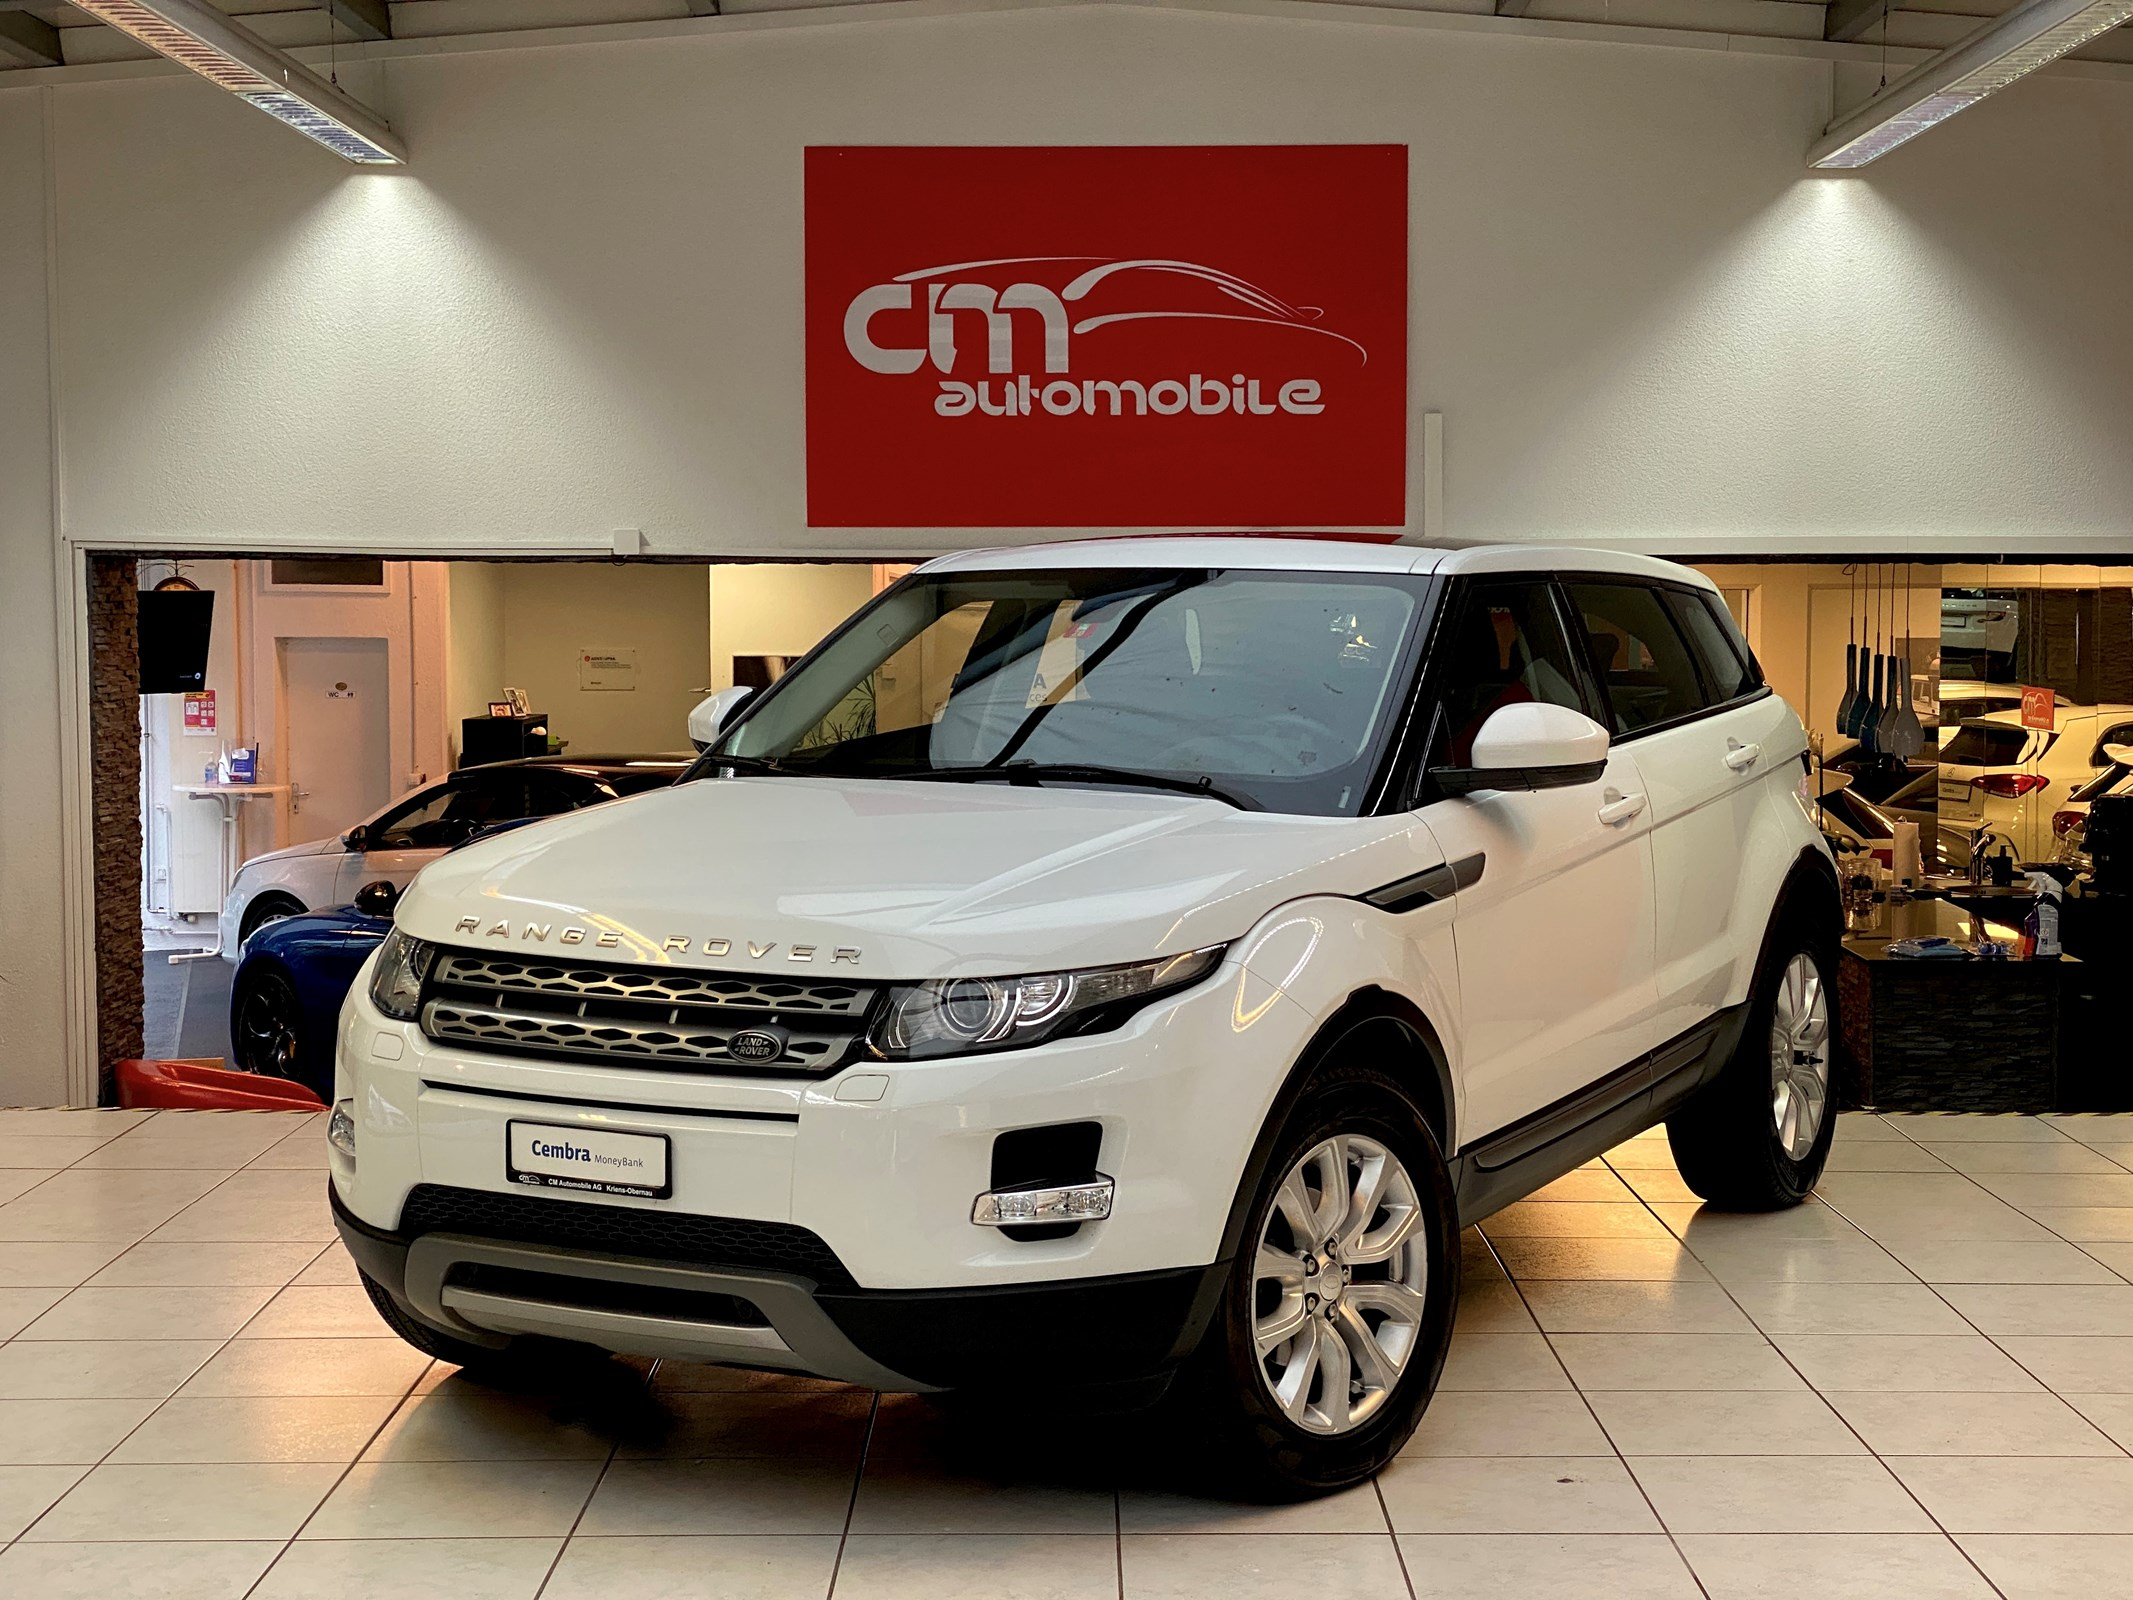 Buy Used Car Suv Land Rover Range Rover Evoque 2 2 Sd4 Pure 109500 Km At 23500 Chf On Carforyou Ch